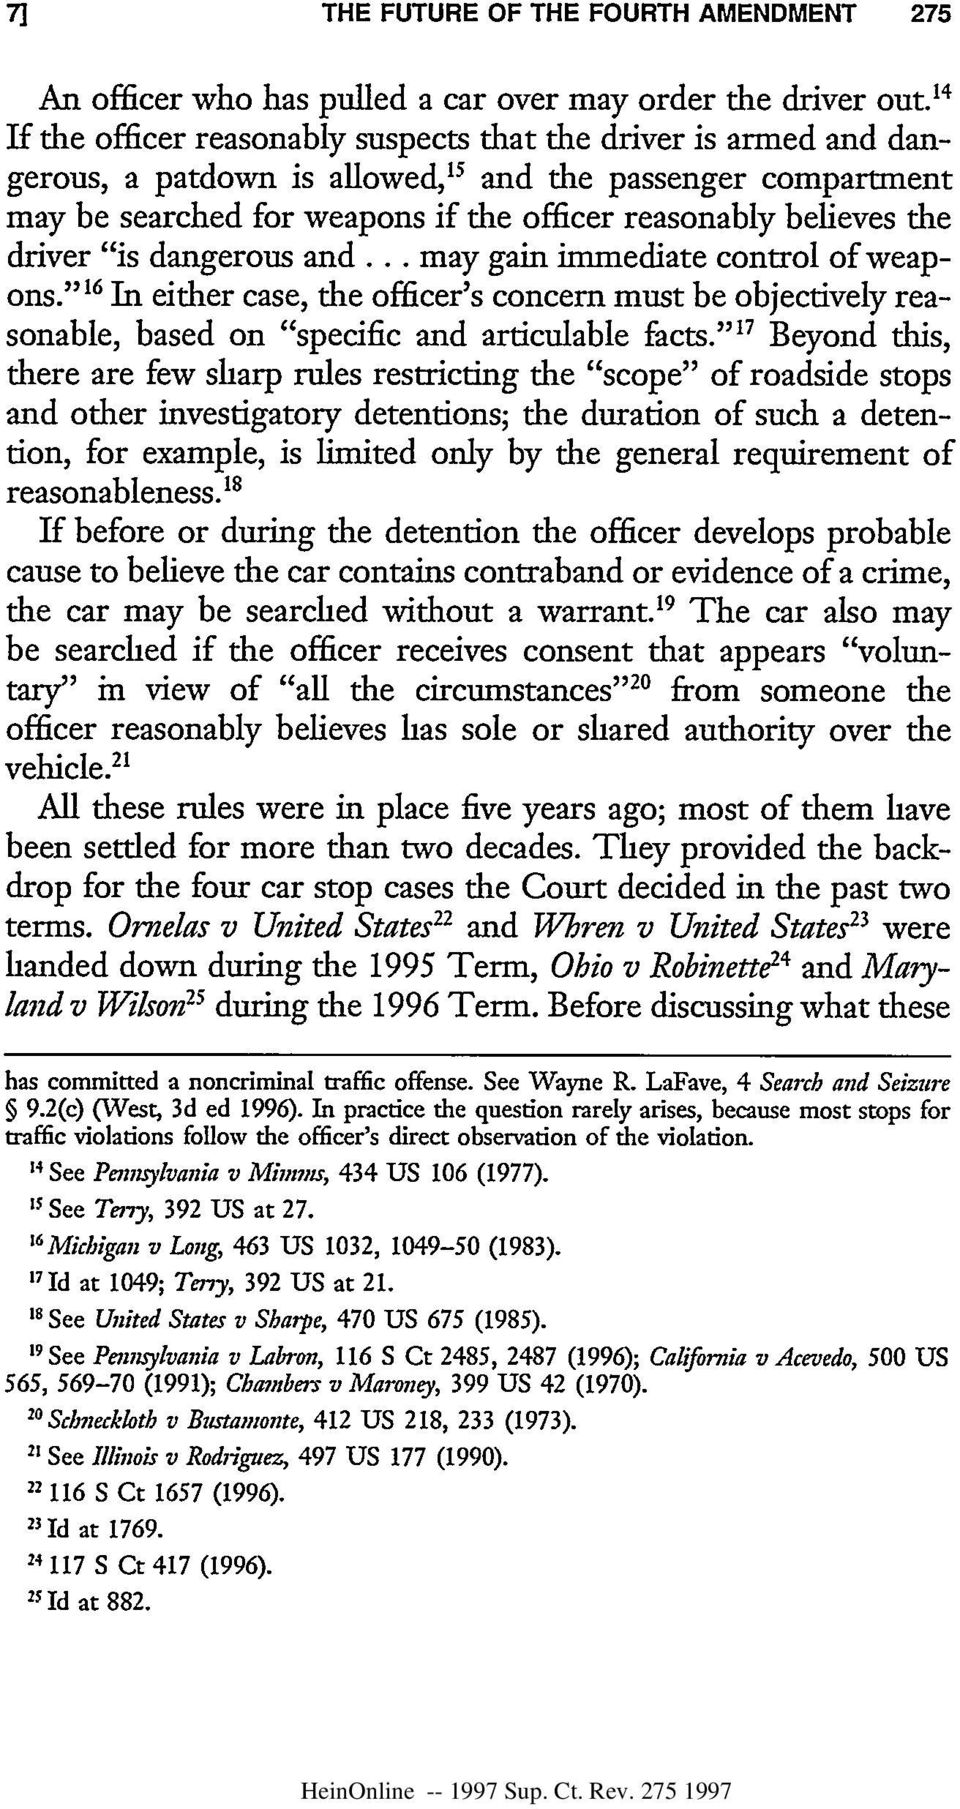 "driver ""is dangerous and... may gain immediate control of weapons.""' 16 In either case, the officer's concern must be objectively reasonable, based on ""specific and articulable facts."